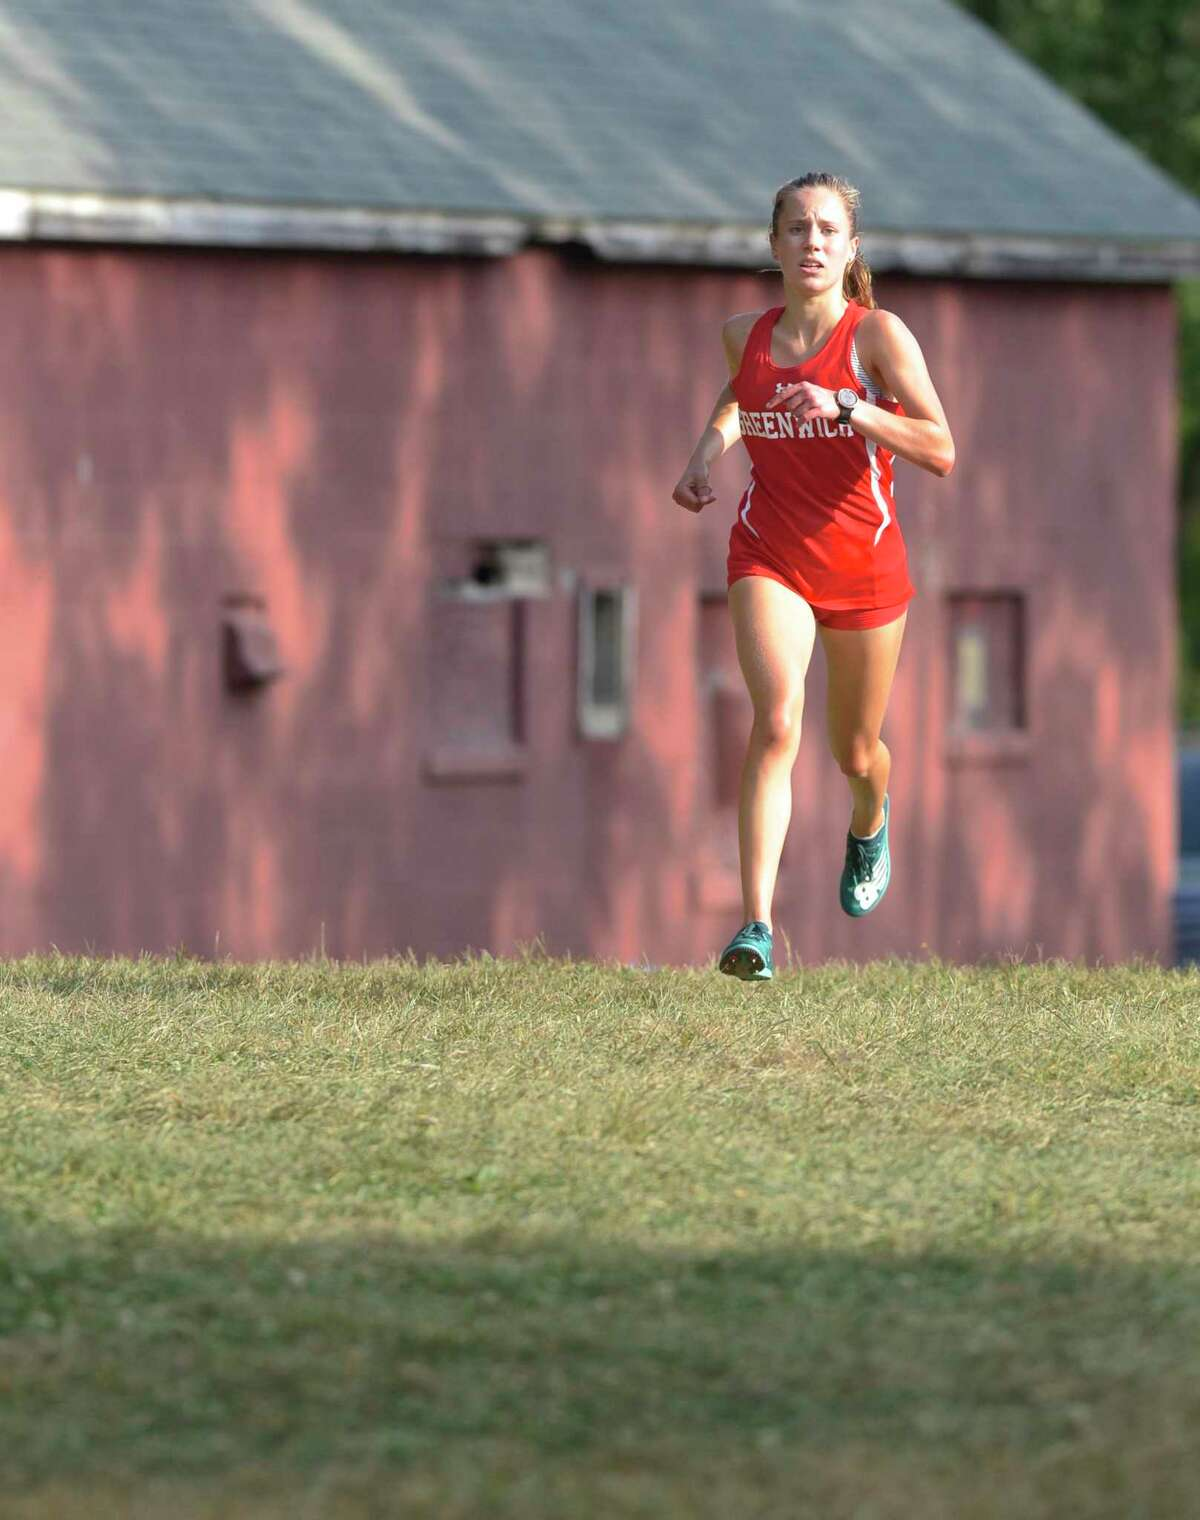 Greenwich's Mari Noble hopes to build on last season's postseason success beginning on Tuesday at the FCIAC Cross Country Championships in New Canaan.